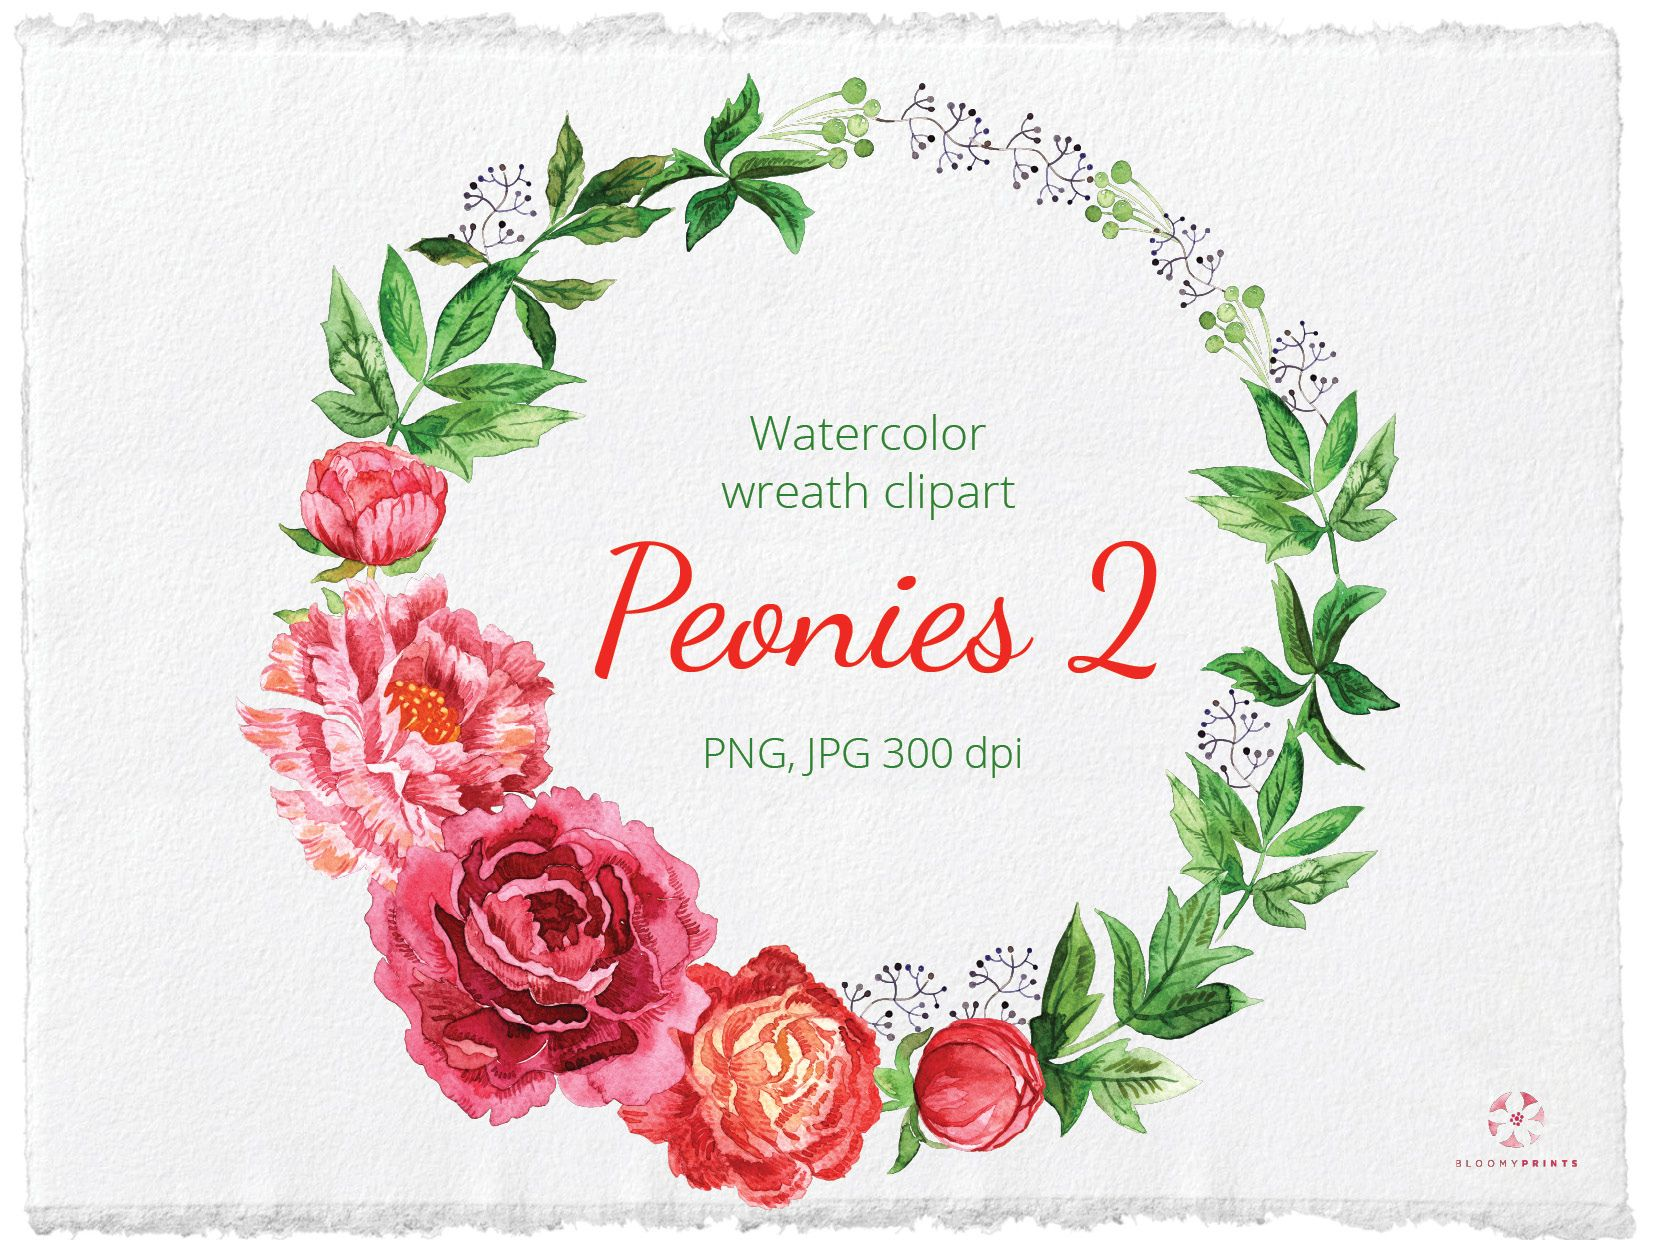 Watercolor Peonies Wreath Clipart Watercolour Flowers Wreath